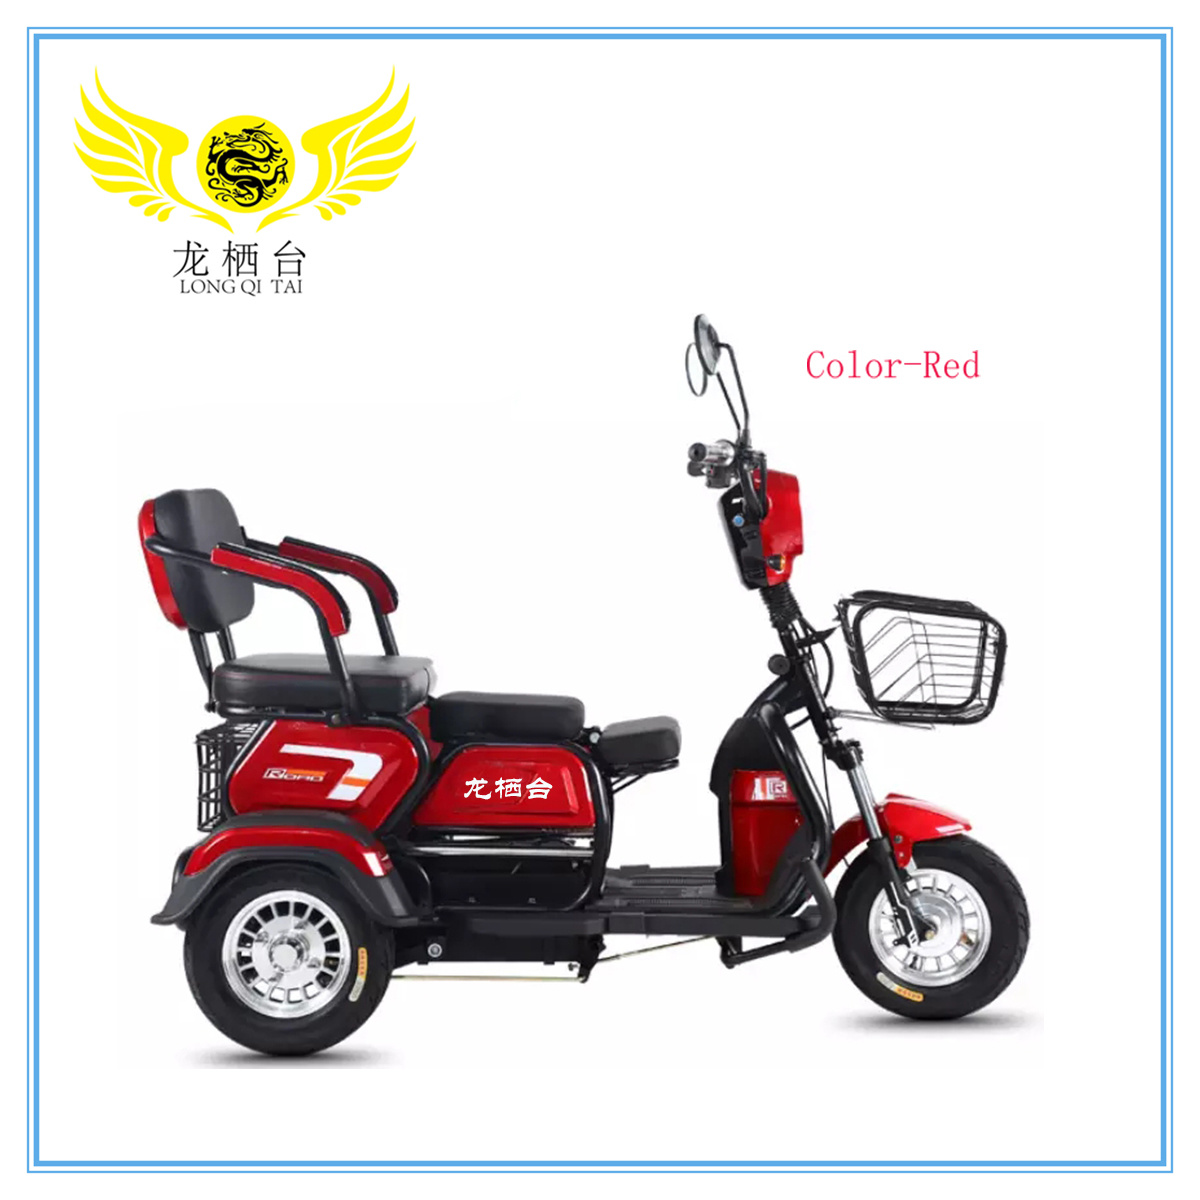 China 3 Wheel Motorized Tricycle Adults For Sell In Philippines Electric Motorcycle Electric Scooter Electric Tricycles China Motorized Tricycle Motorcycle Electric Scooter